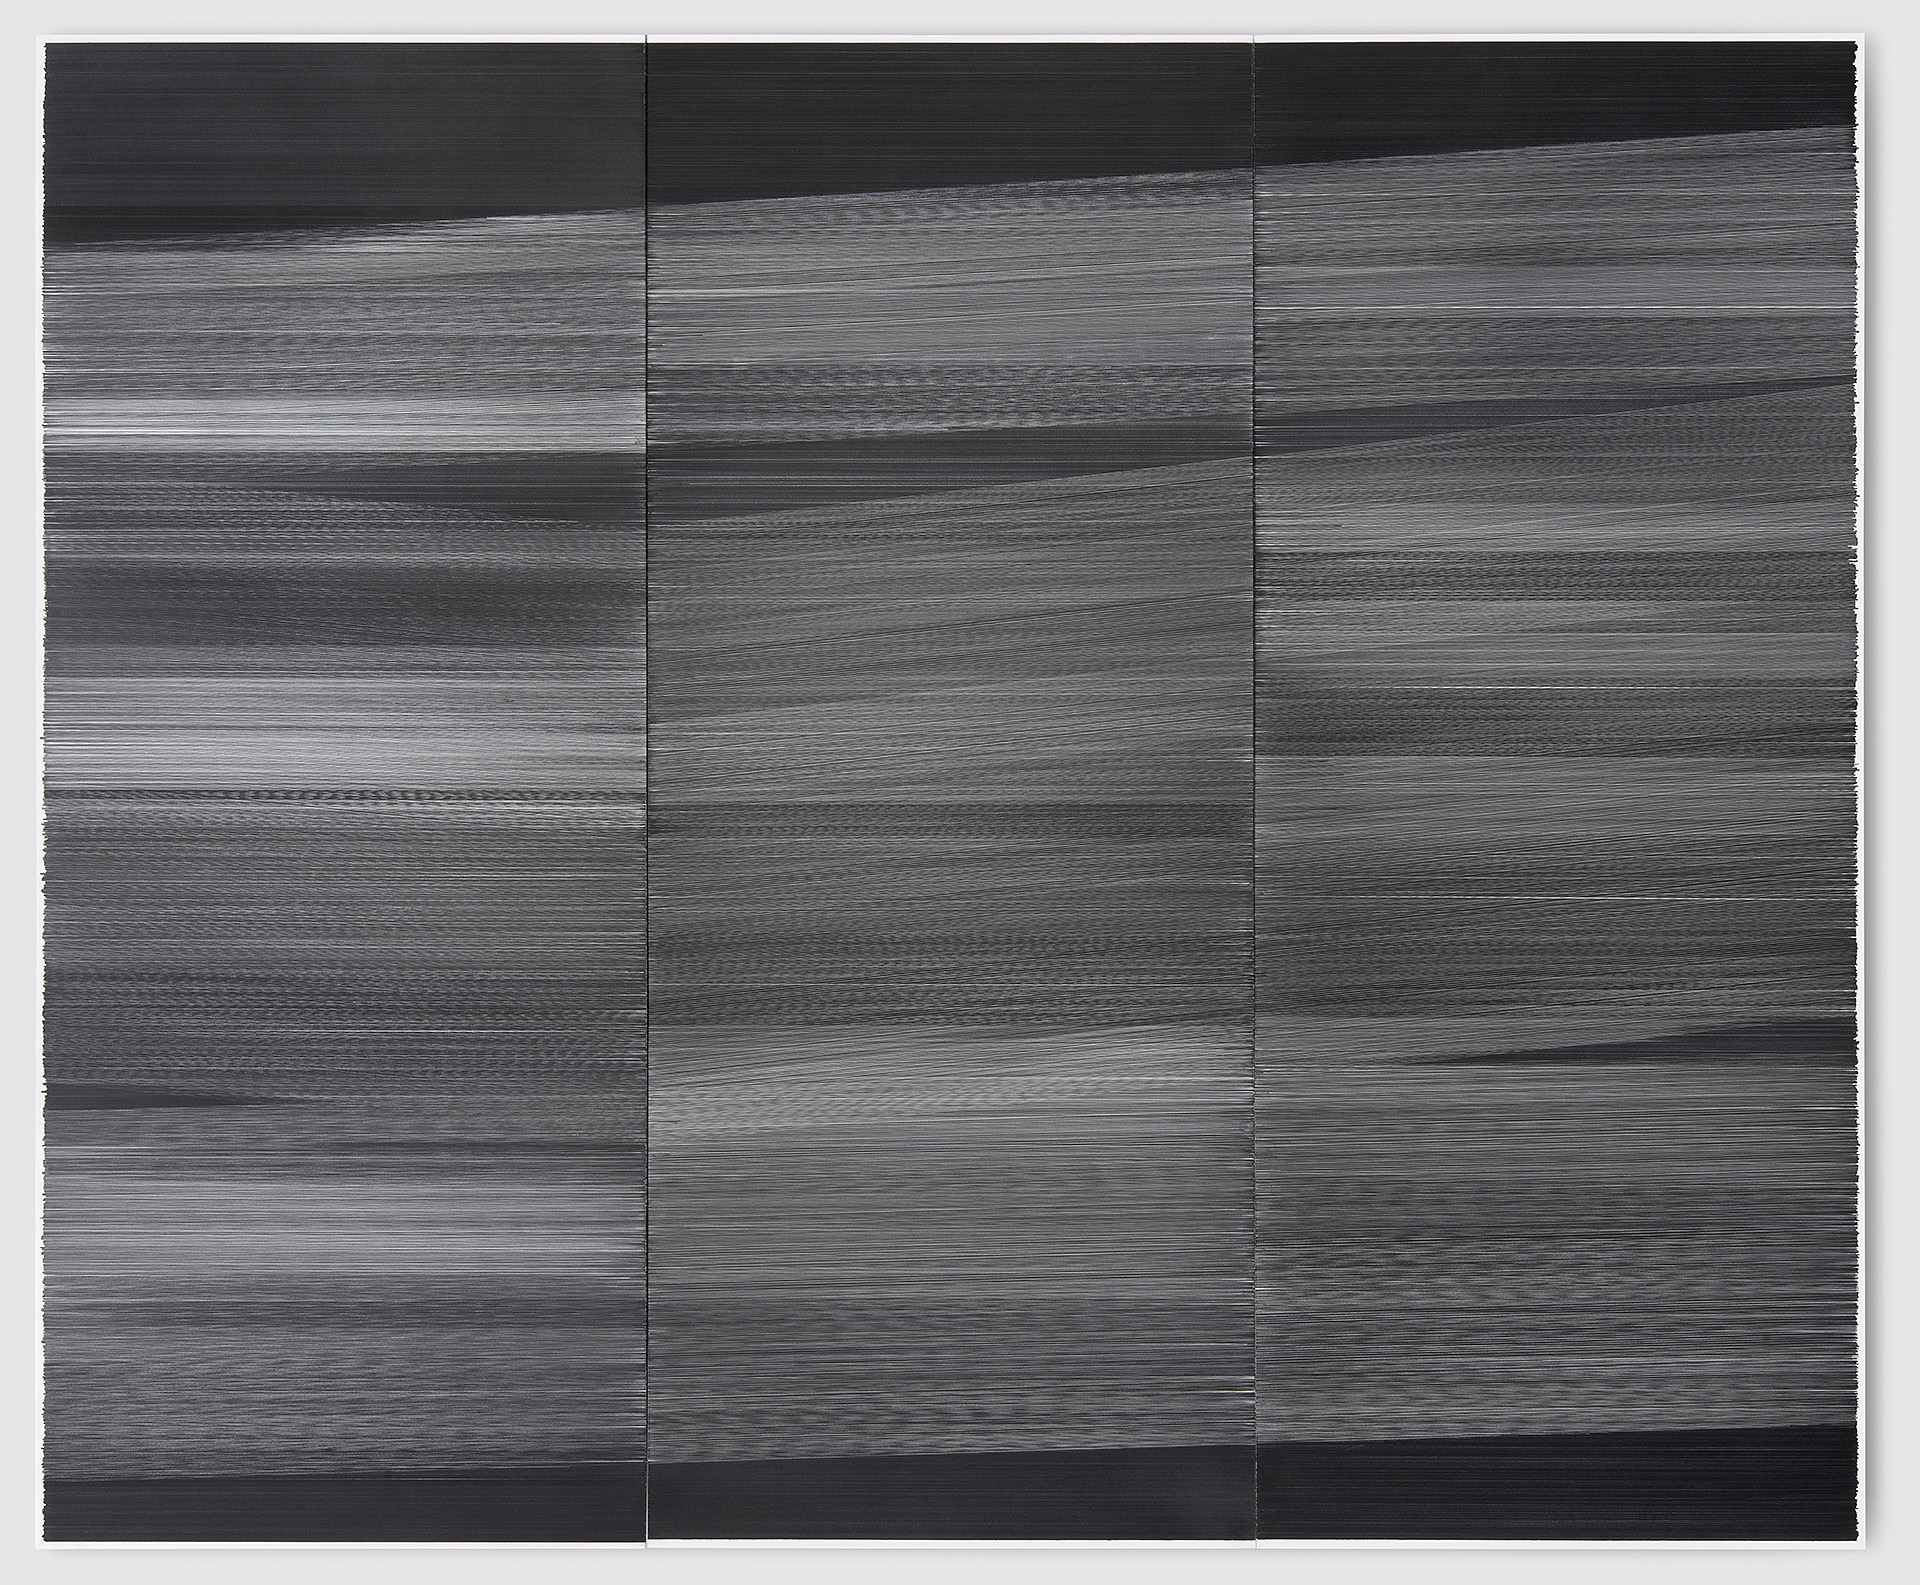 field drawing, 2015 graphite on cotton mat board 55w by 66h inches